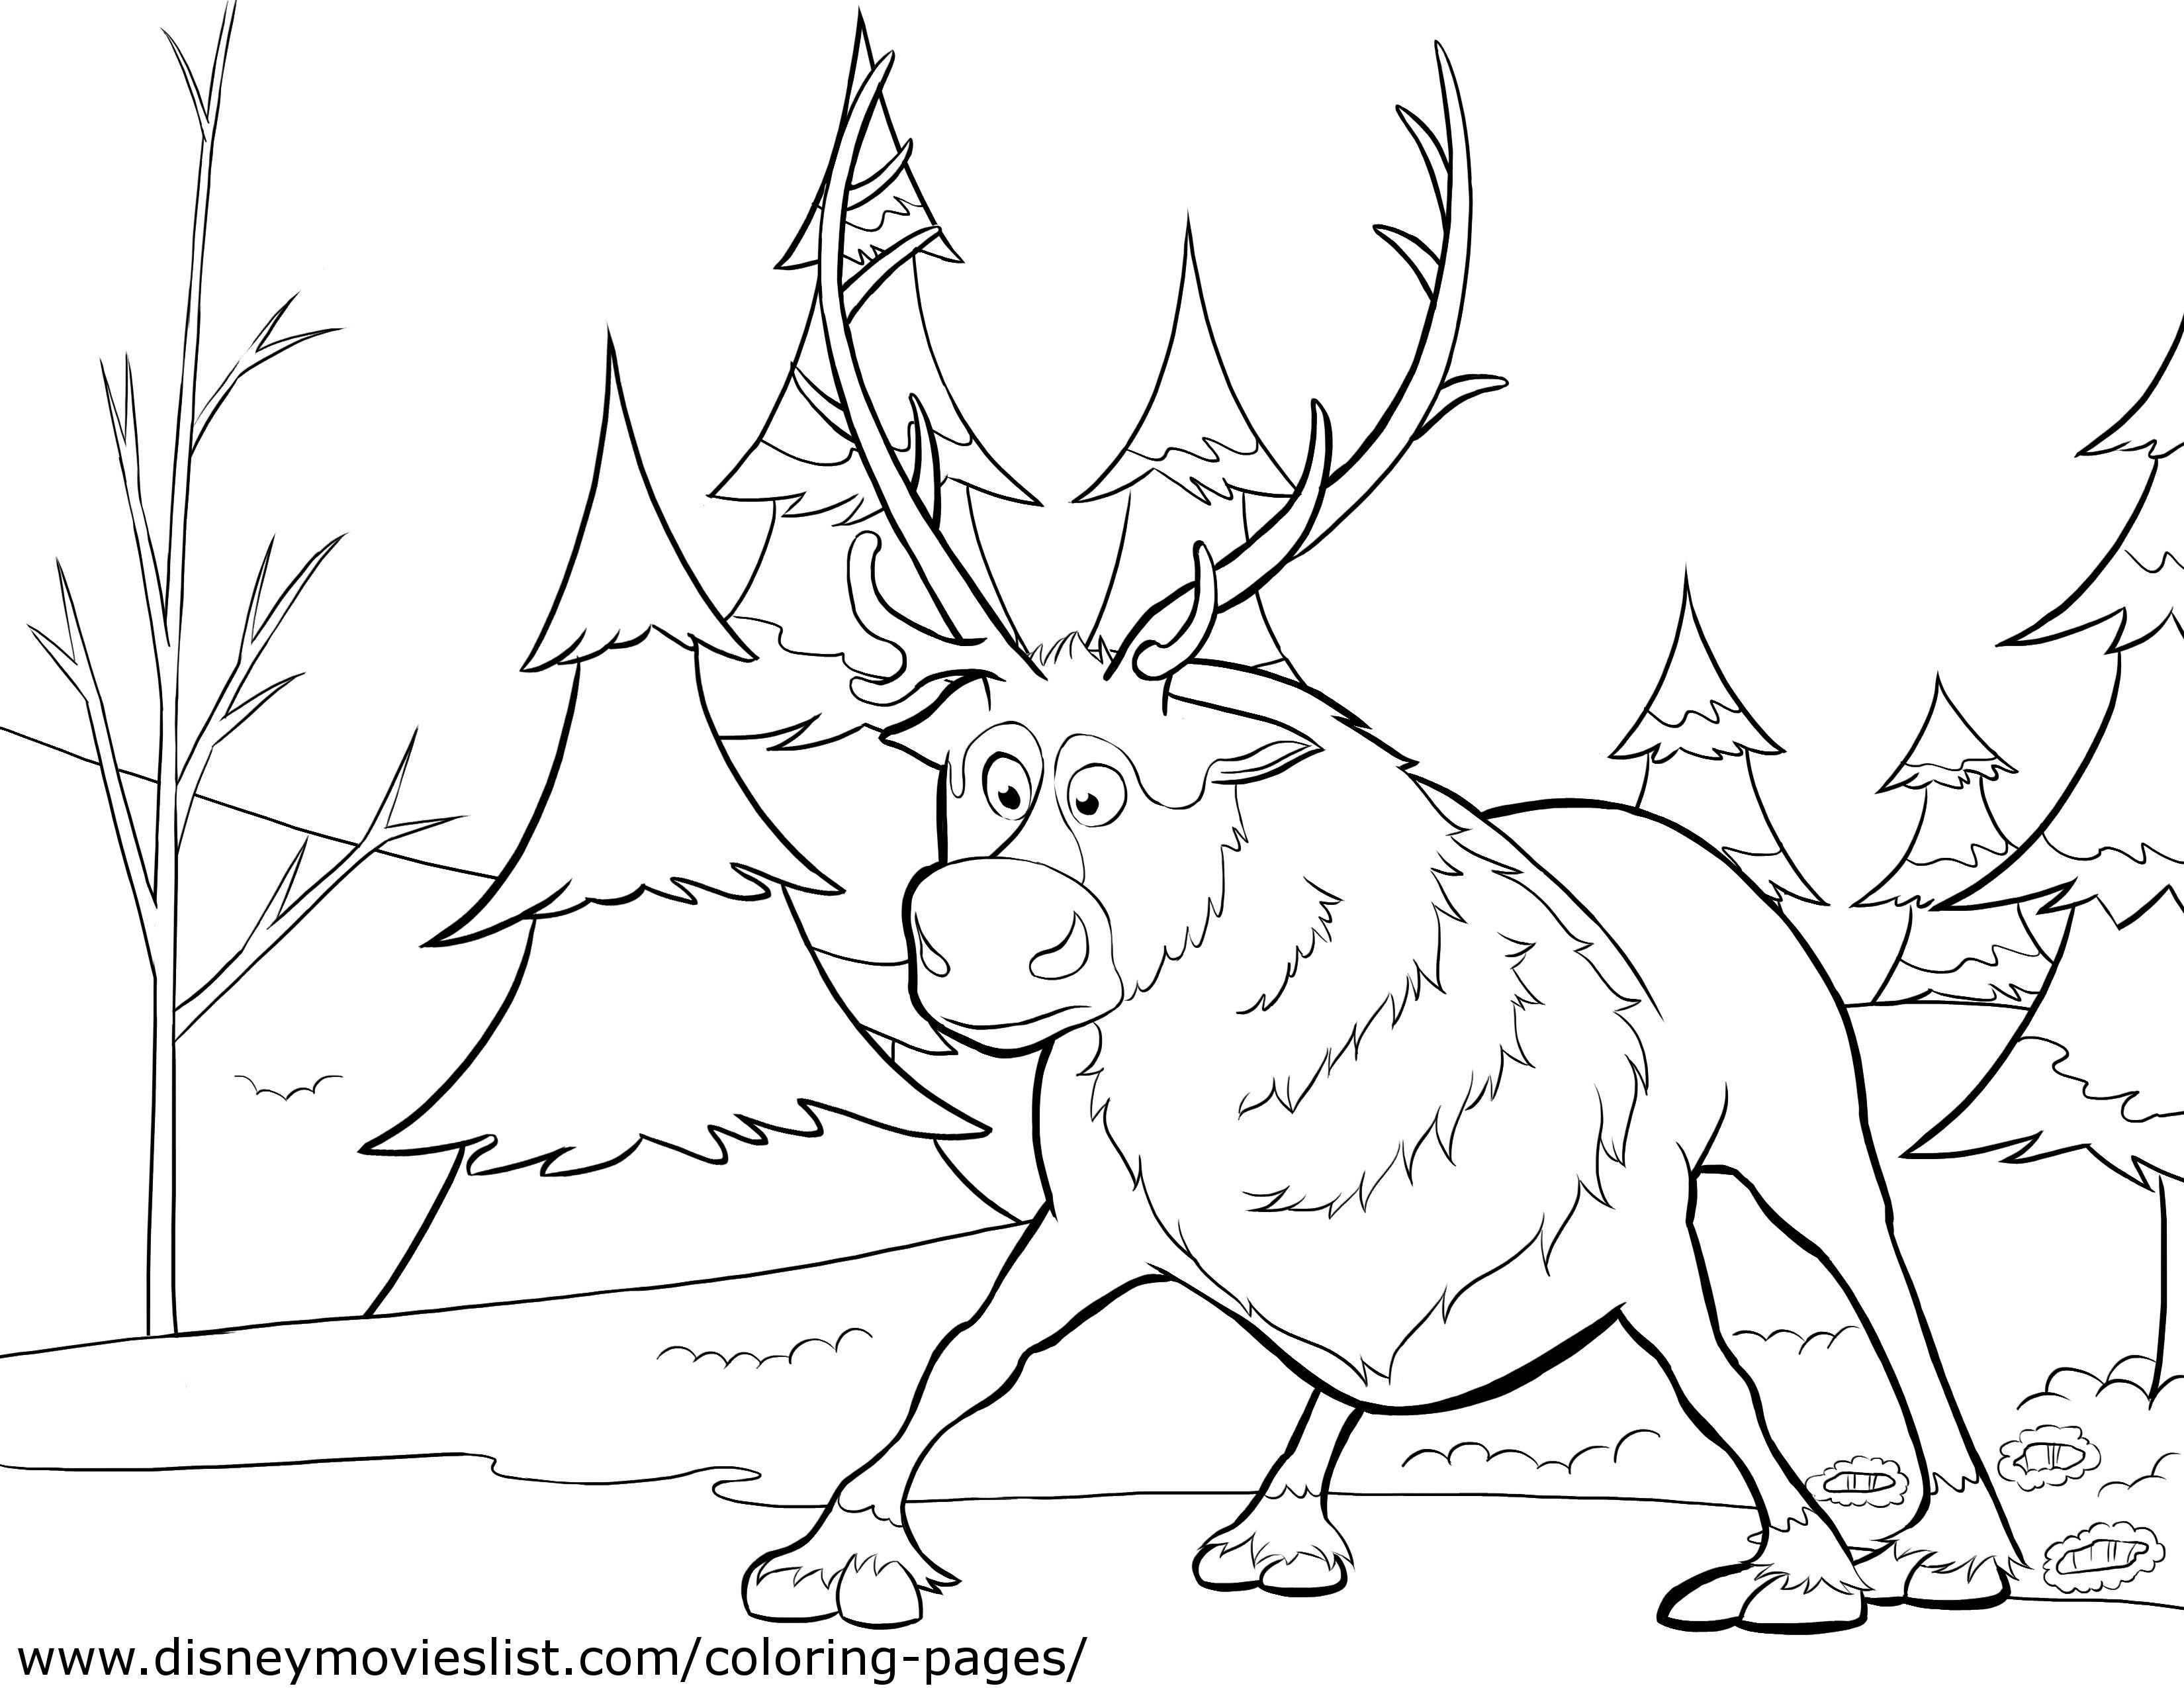 Frozen Coloring Pages A4 Printable